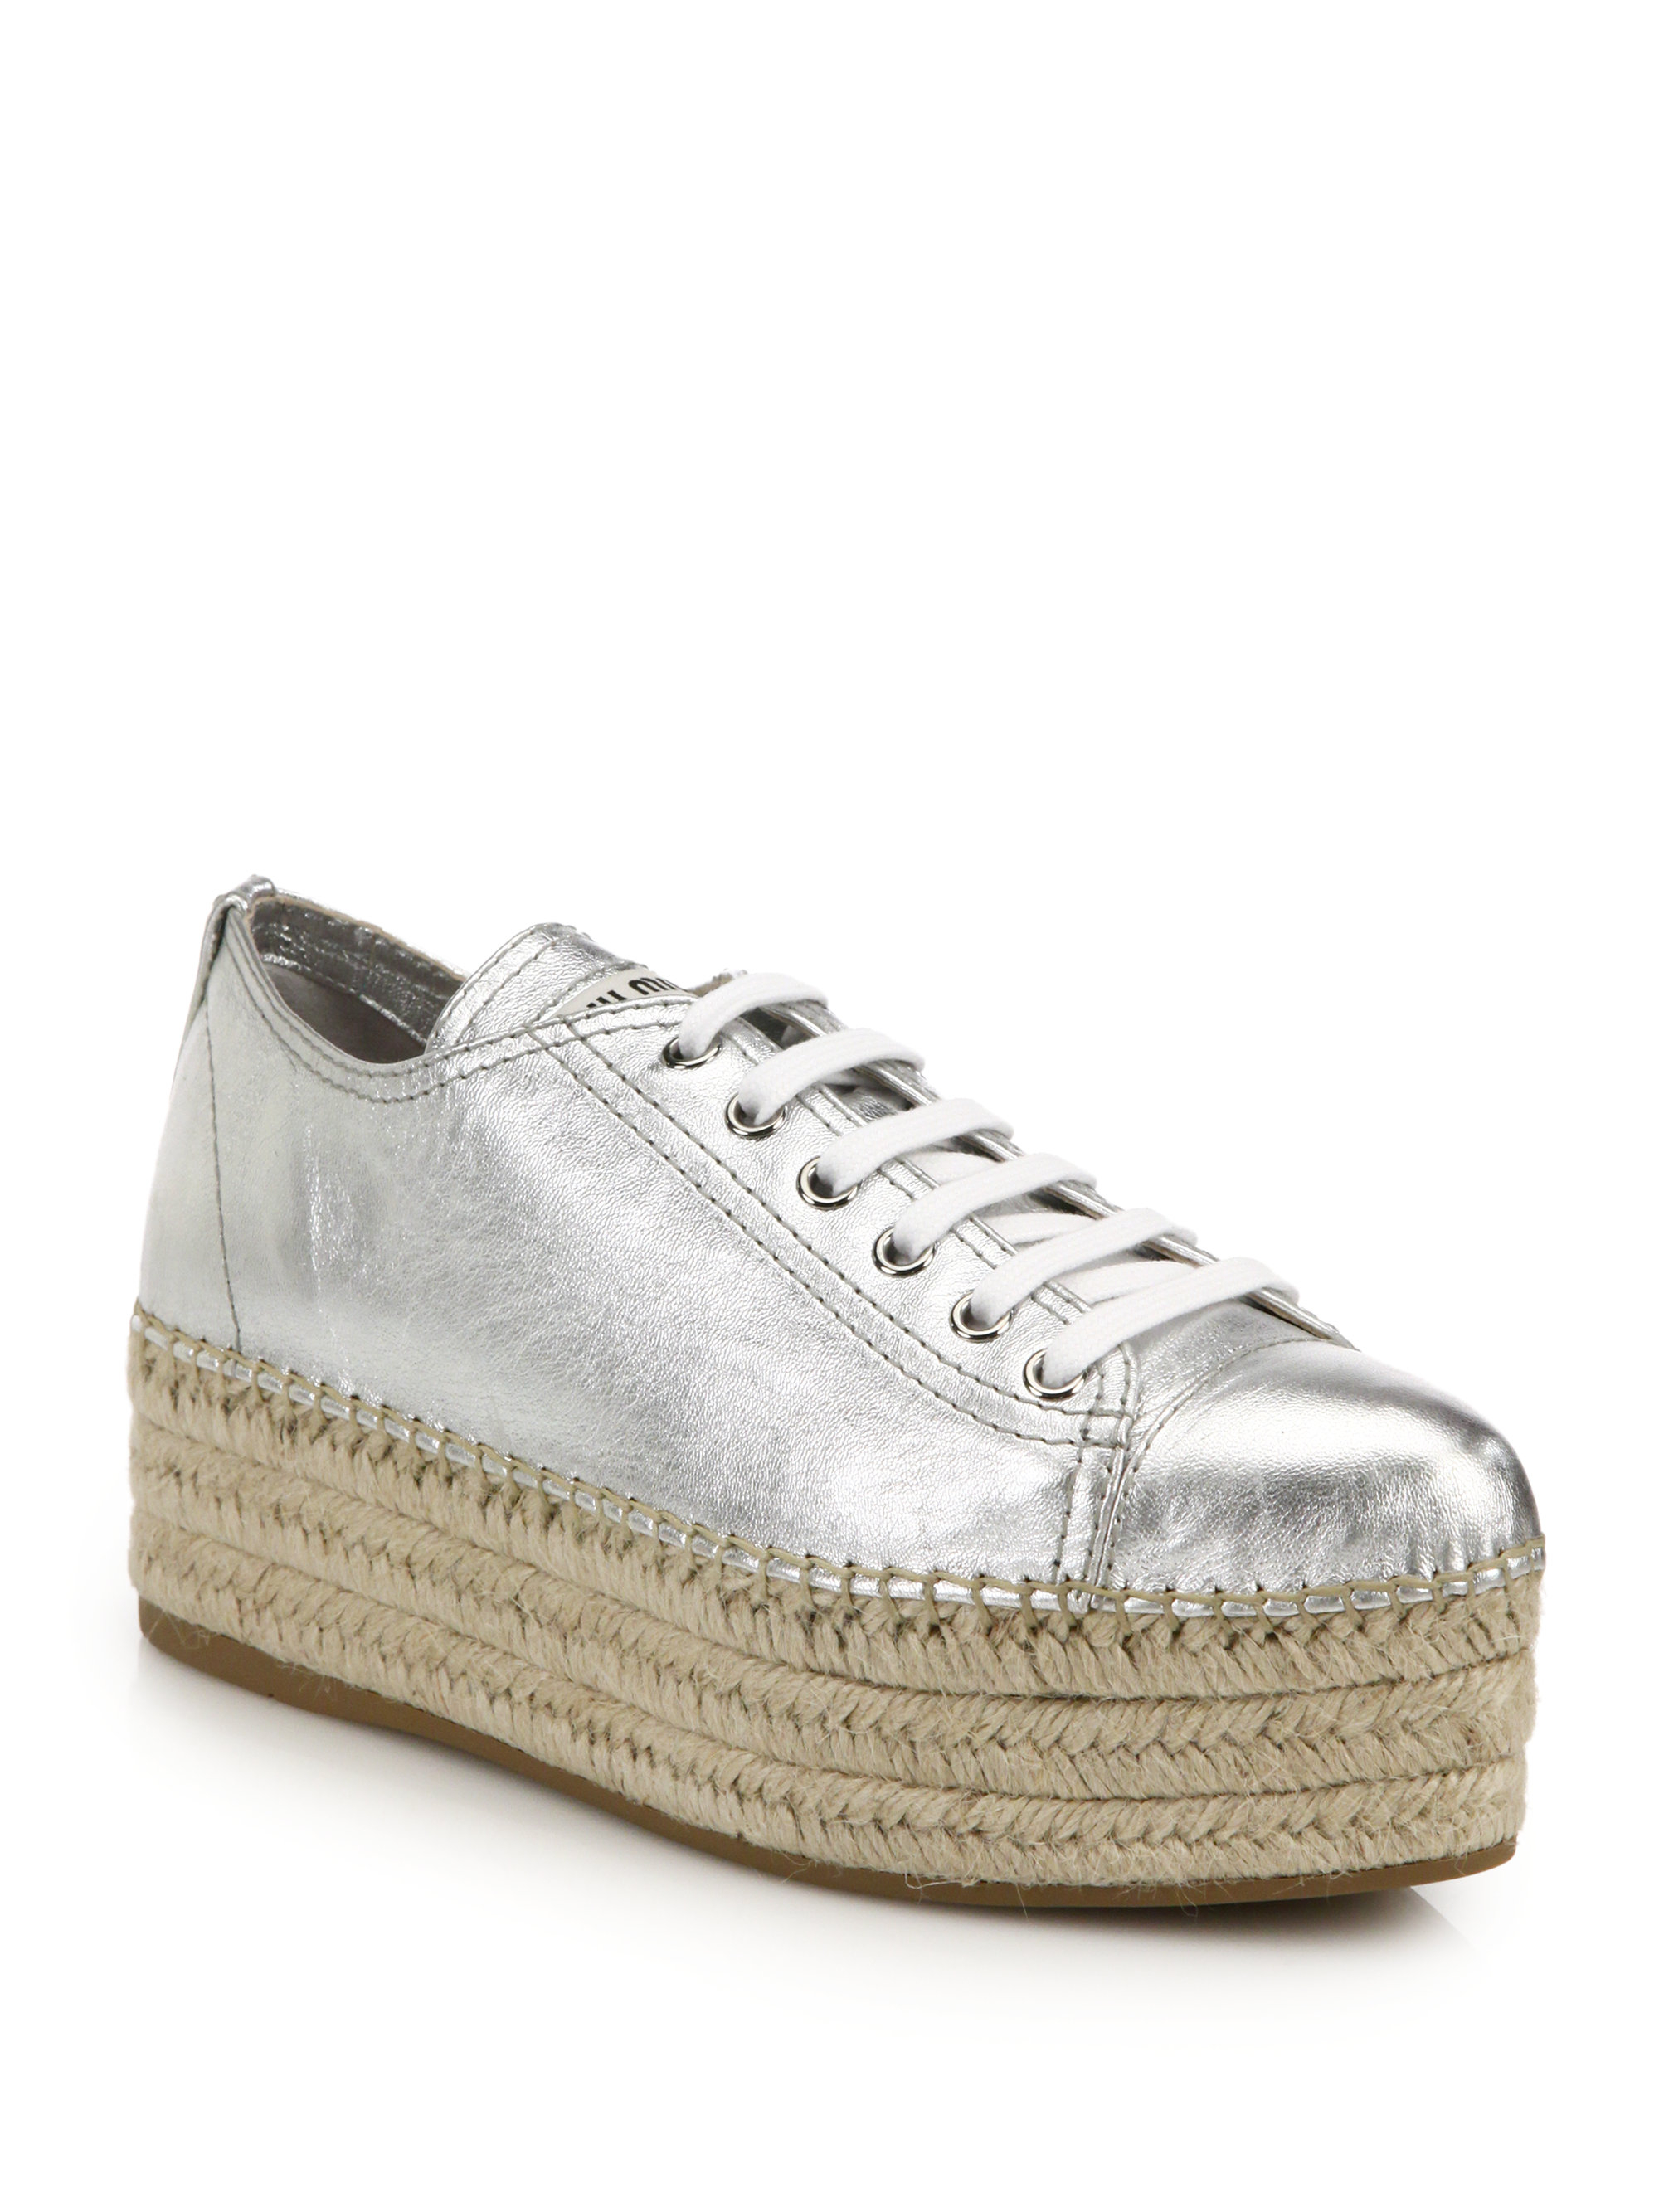 Miu Miu Embellished Metallic-Leather Loafers